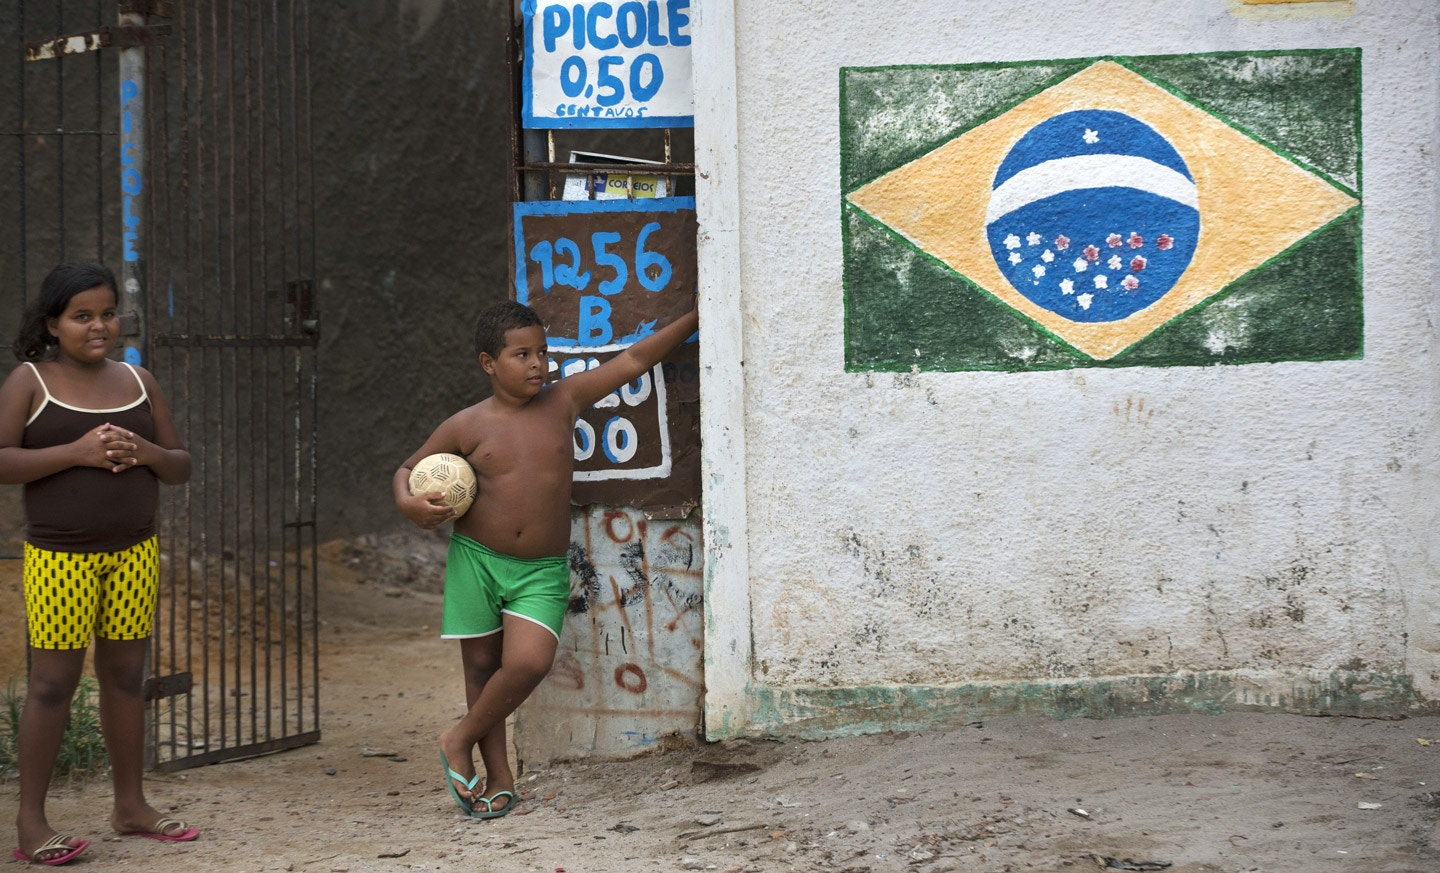 Children stand outside a small store in Olinda, Brazil, on Wednesday, Jan. 20, 2016.